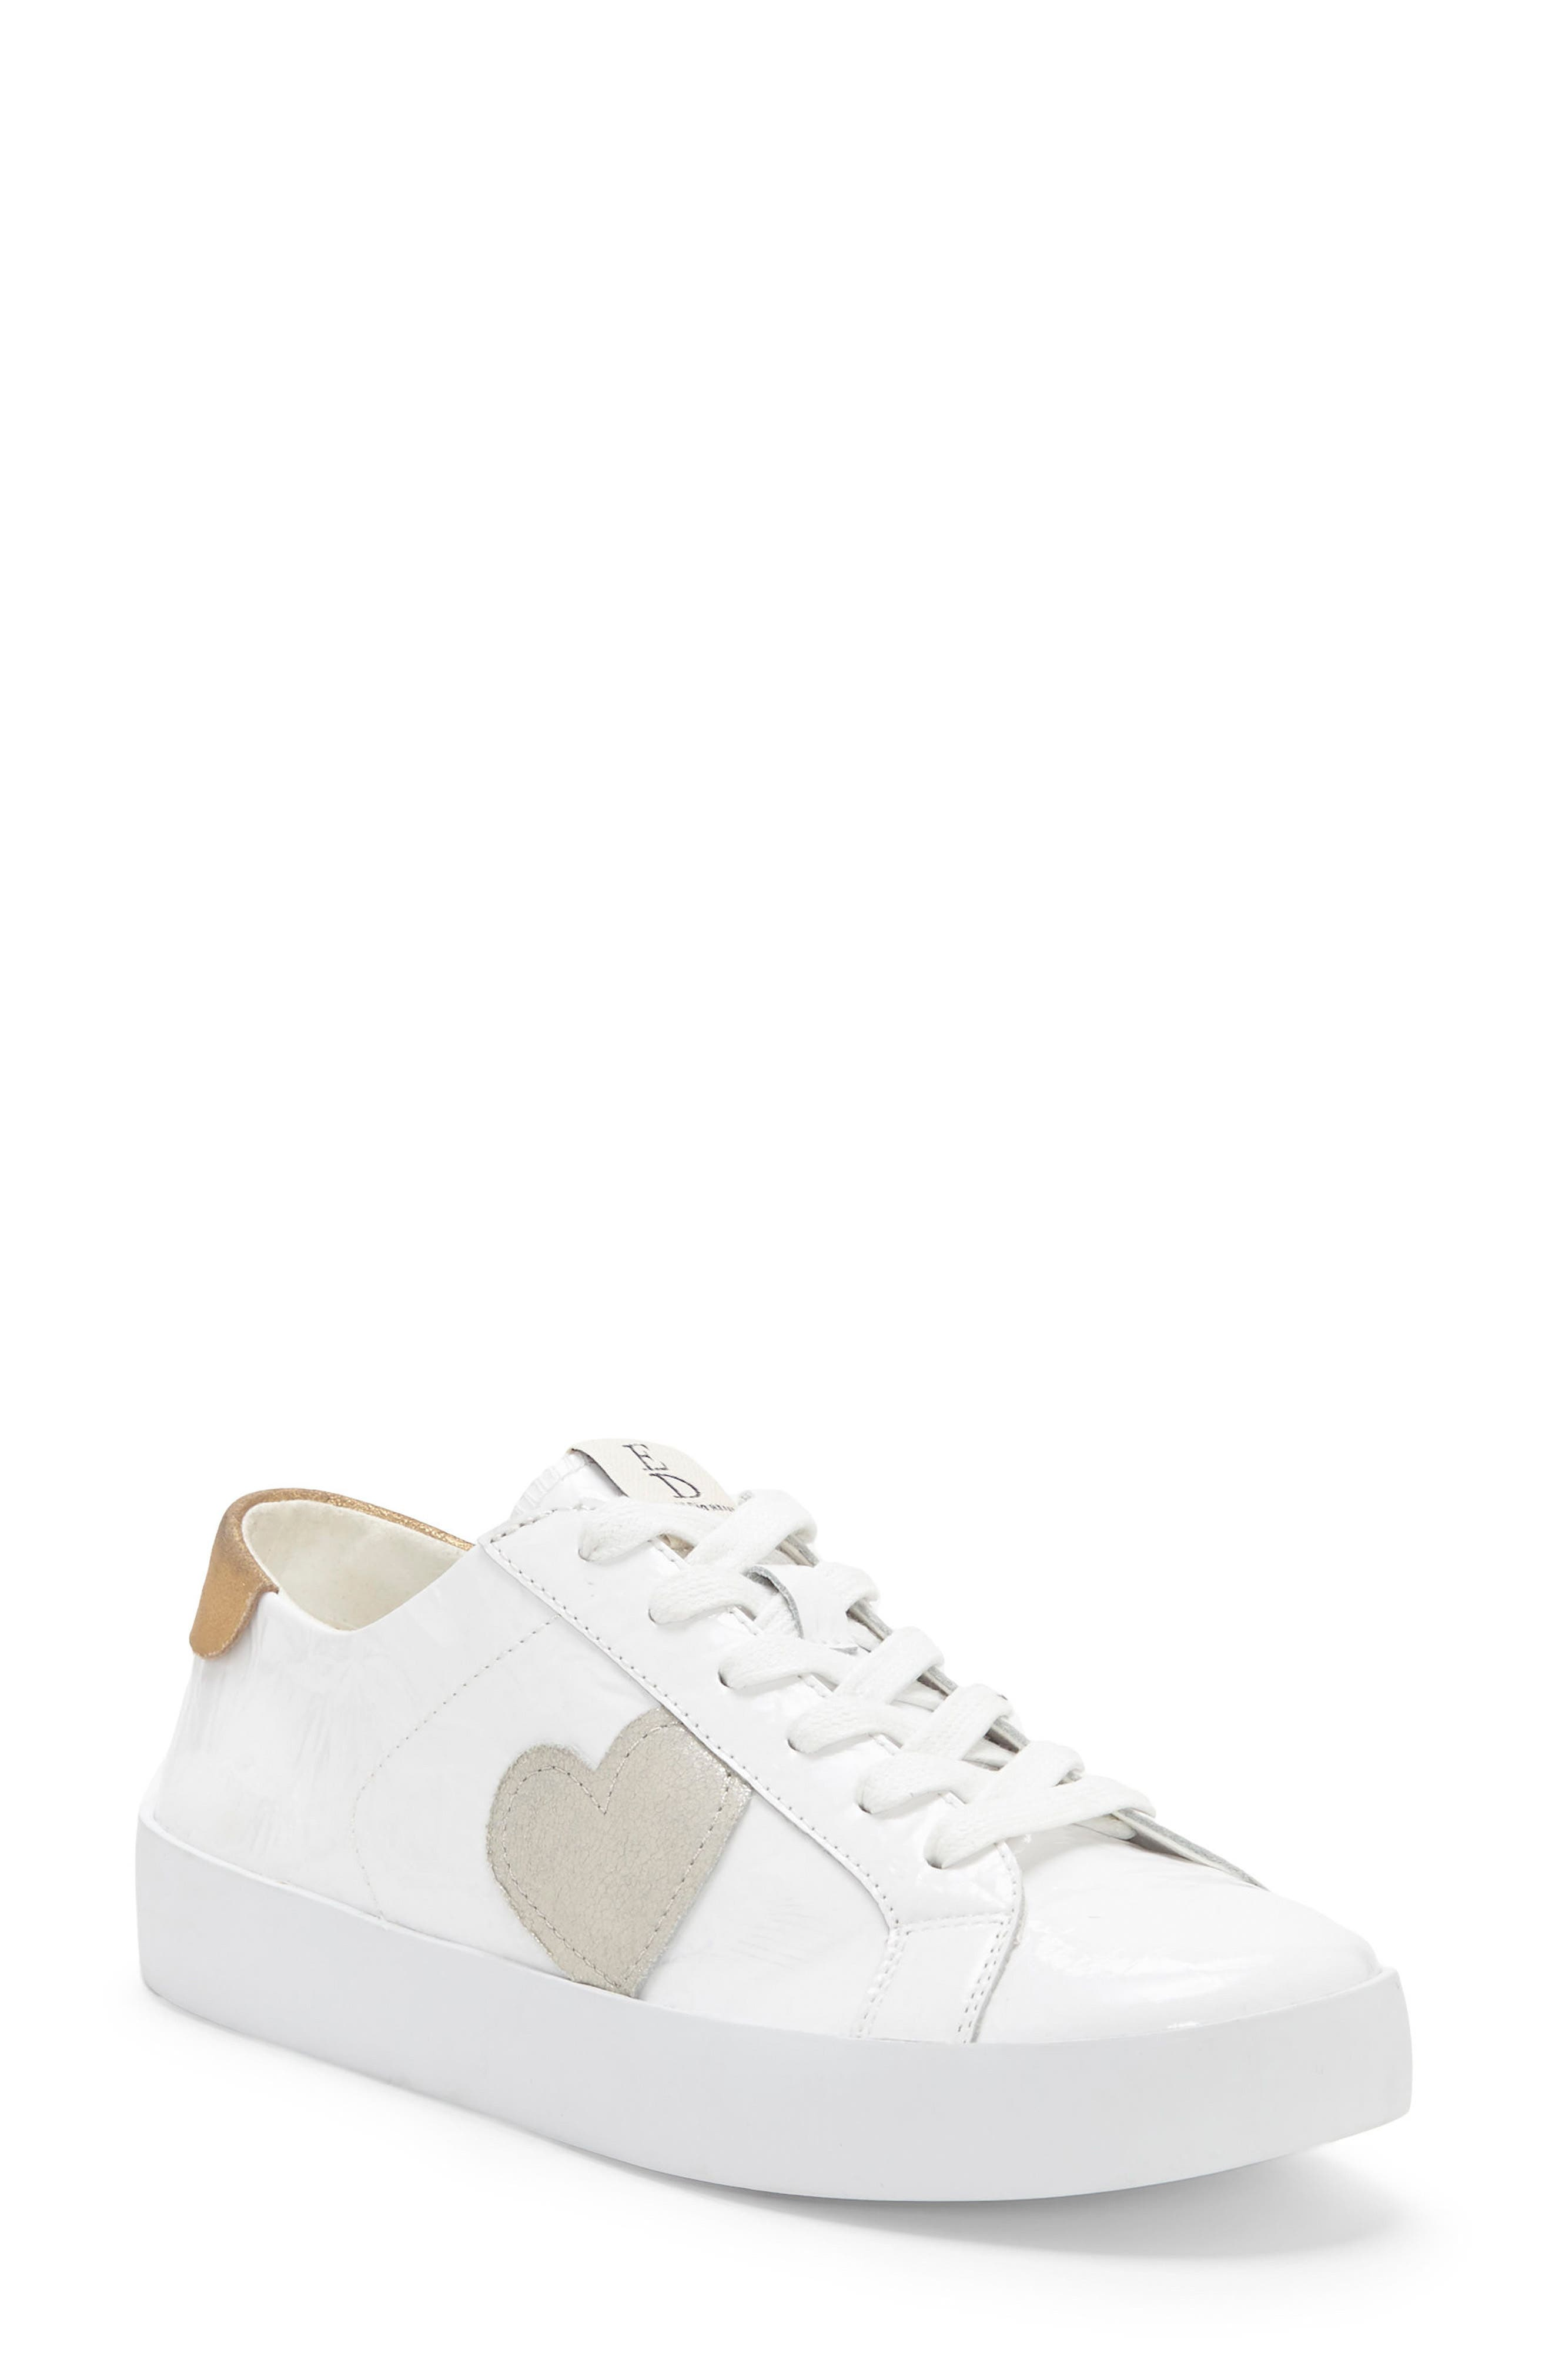 Gillen Sneaker,                         Main,                         color, Pure White Crinkled Patent